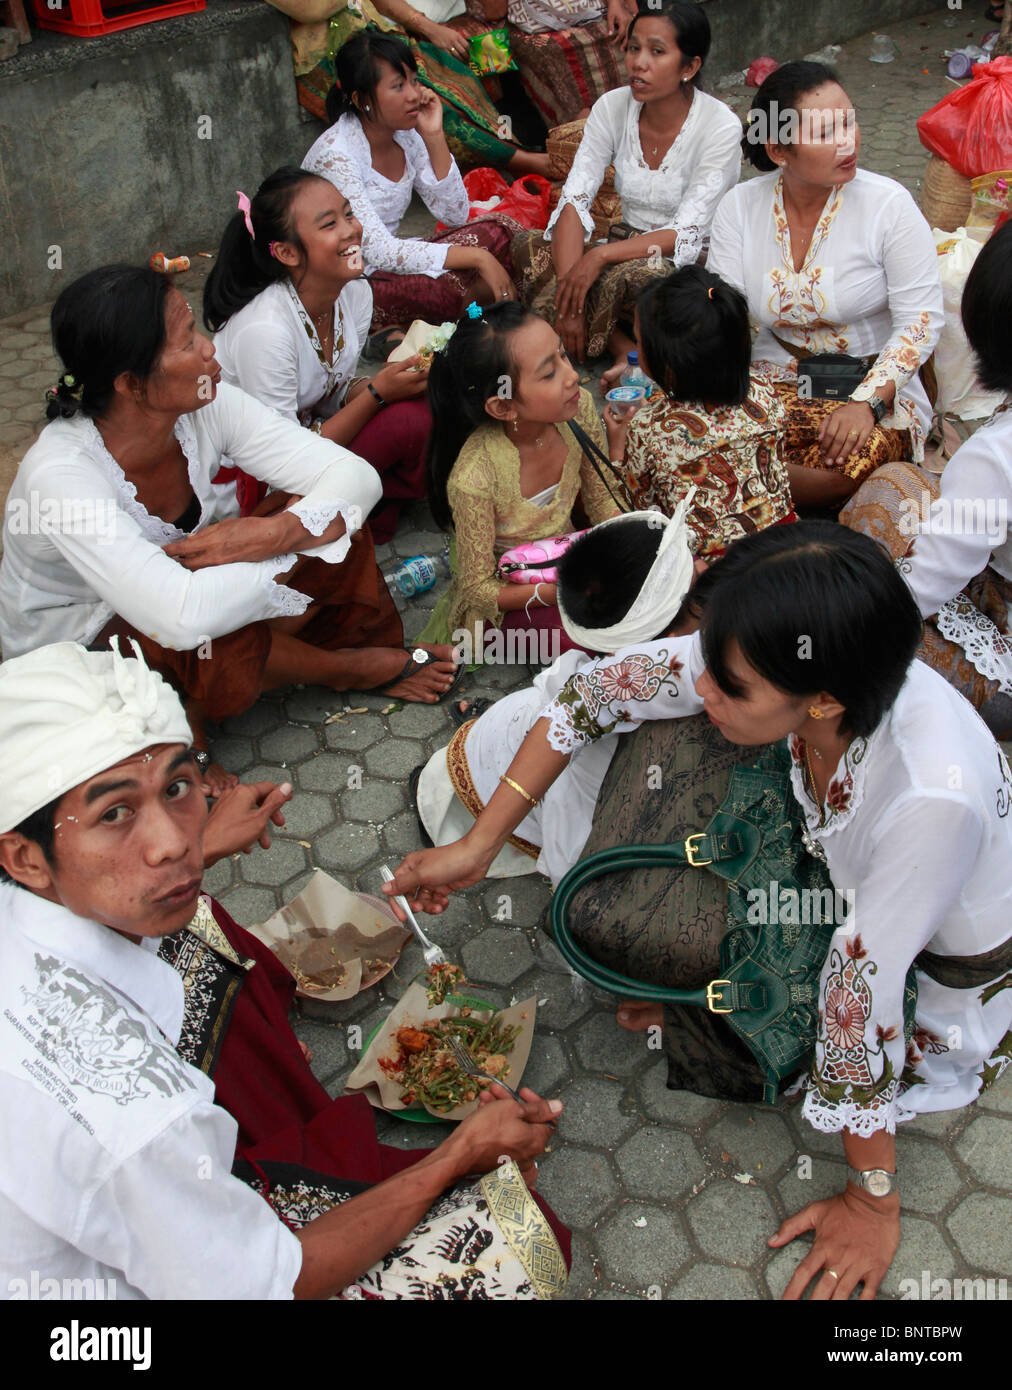 Indonesia Bali Mas Temple Festival Group Of People